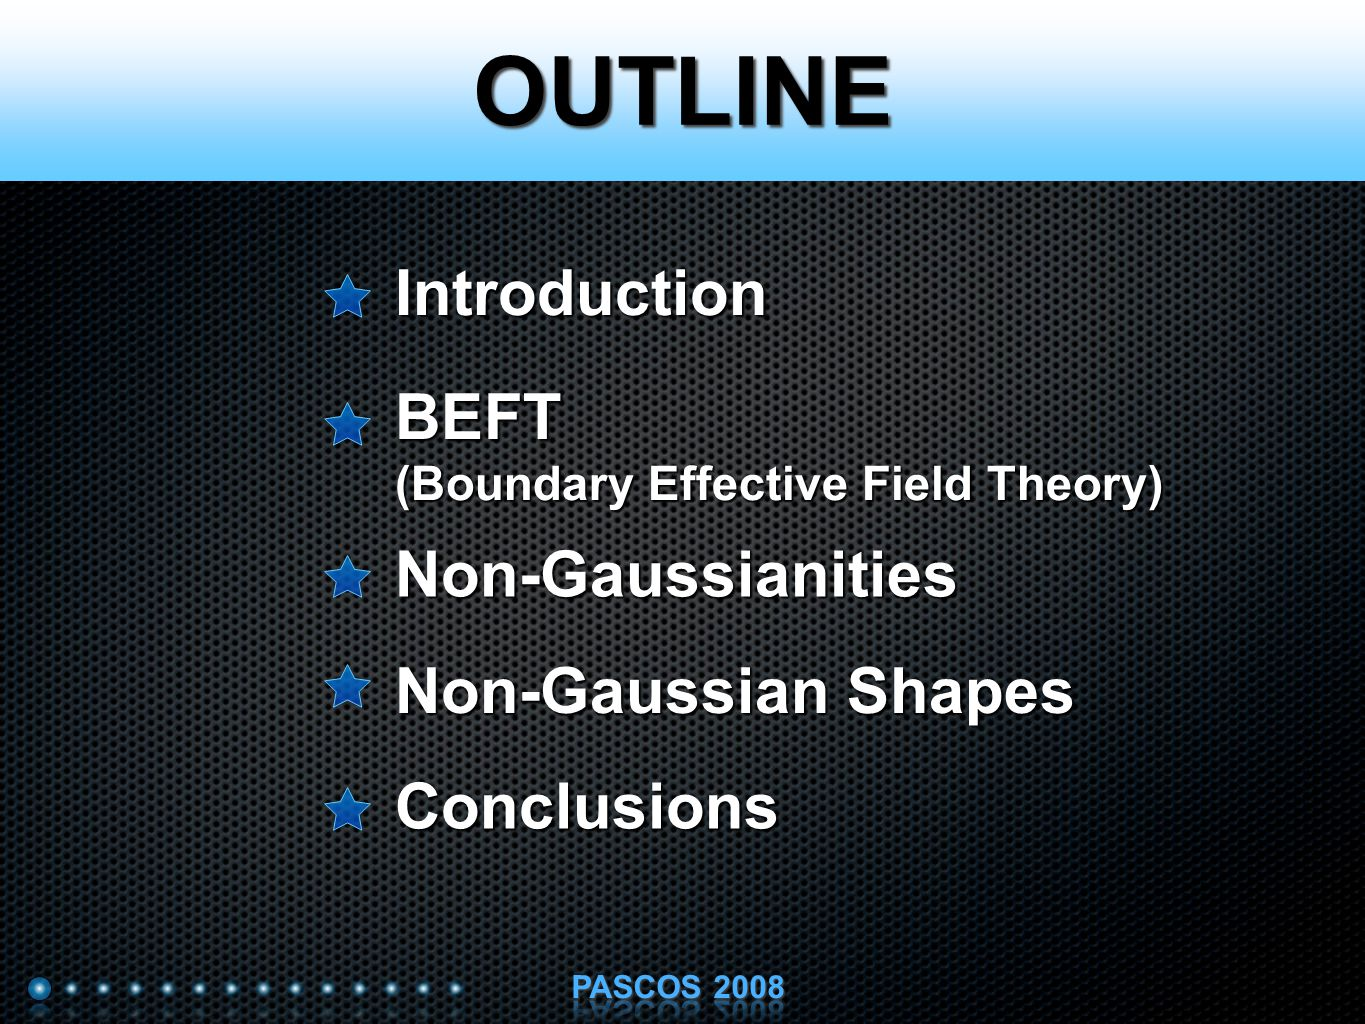 OUTLINE Introduction BEFT (Boundary Effective Field Theory) Non-Gaussianities Conclusions Non-Gaussian Shapes